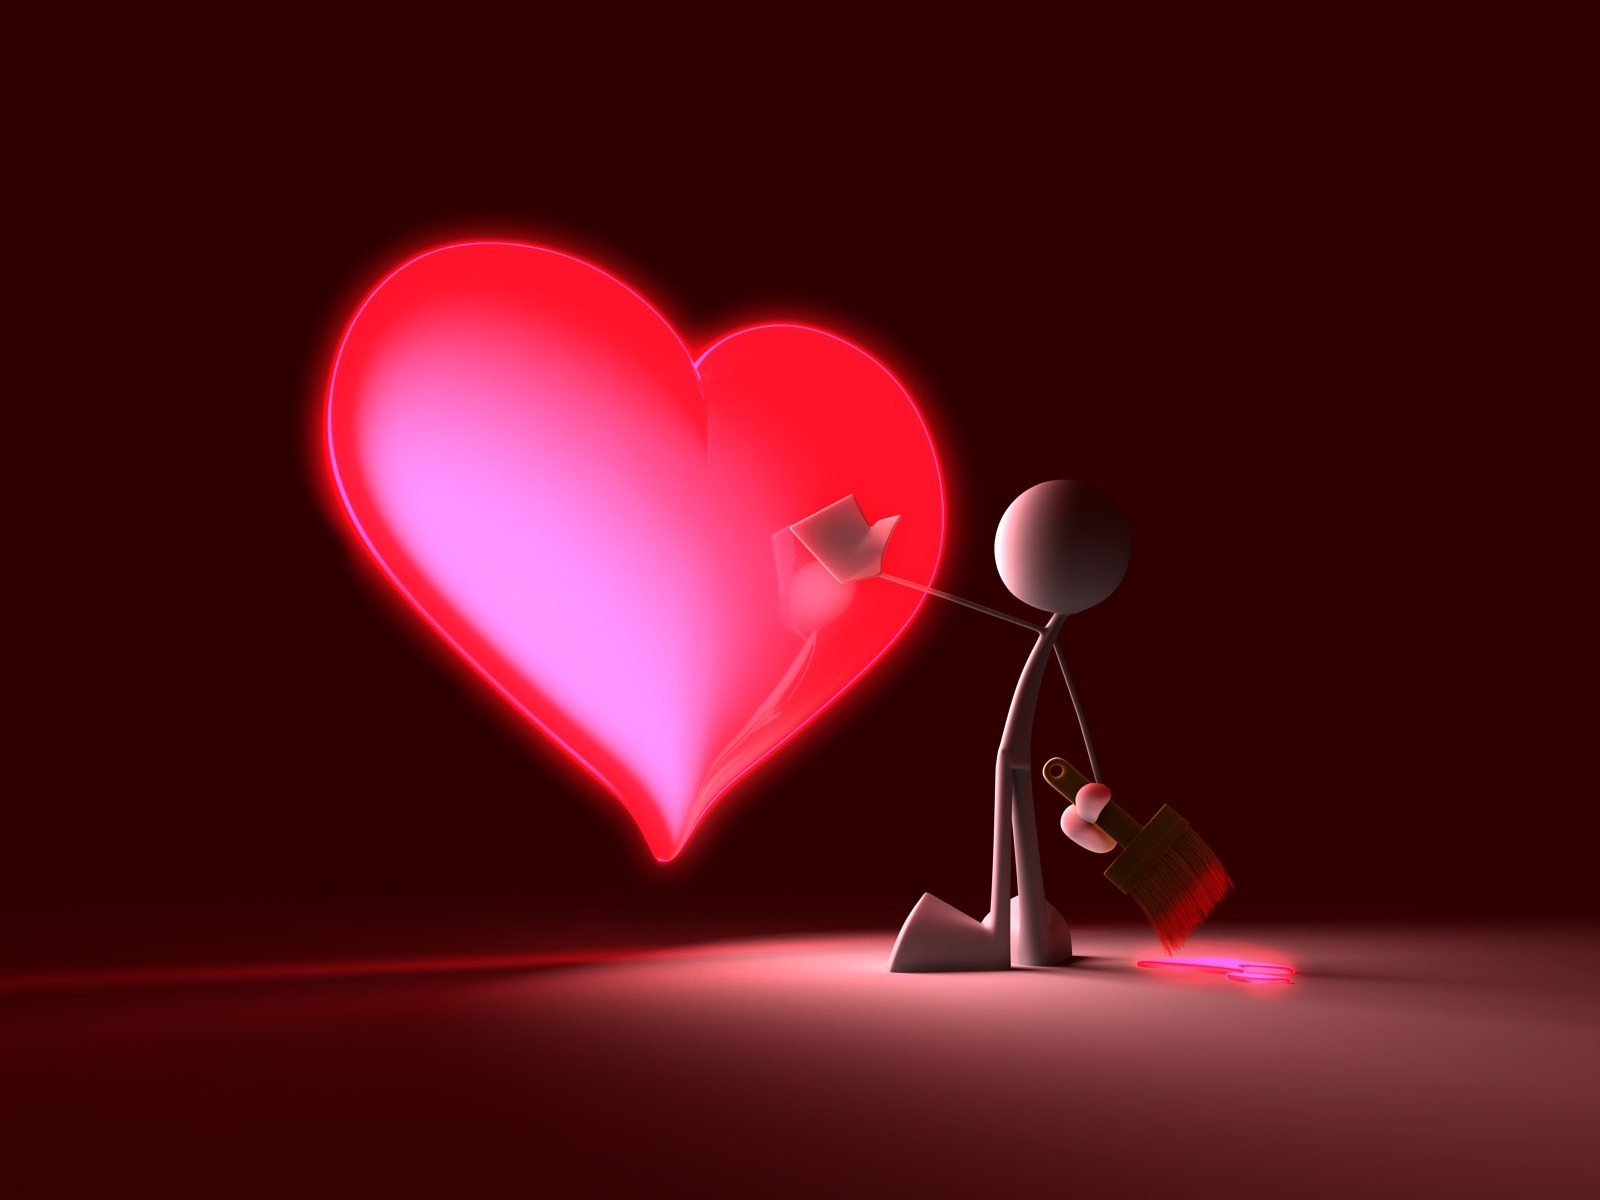 Broken Heart Alone Girl Wallpapers Best Sad Wallpapers 2011